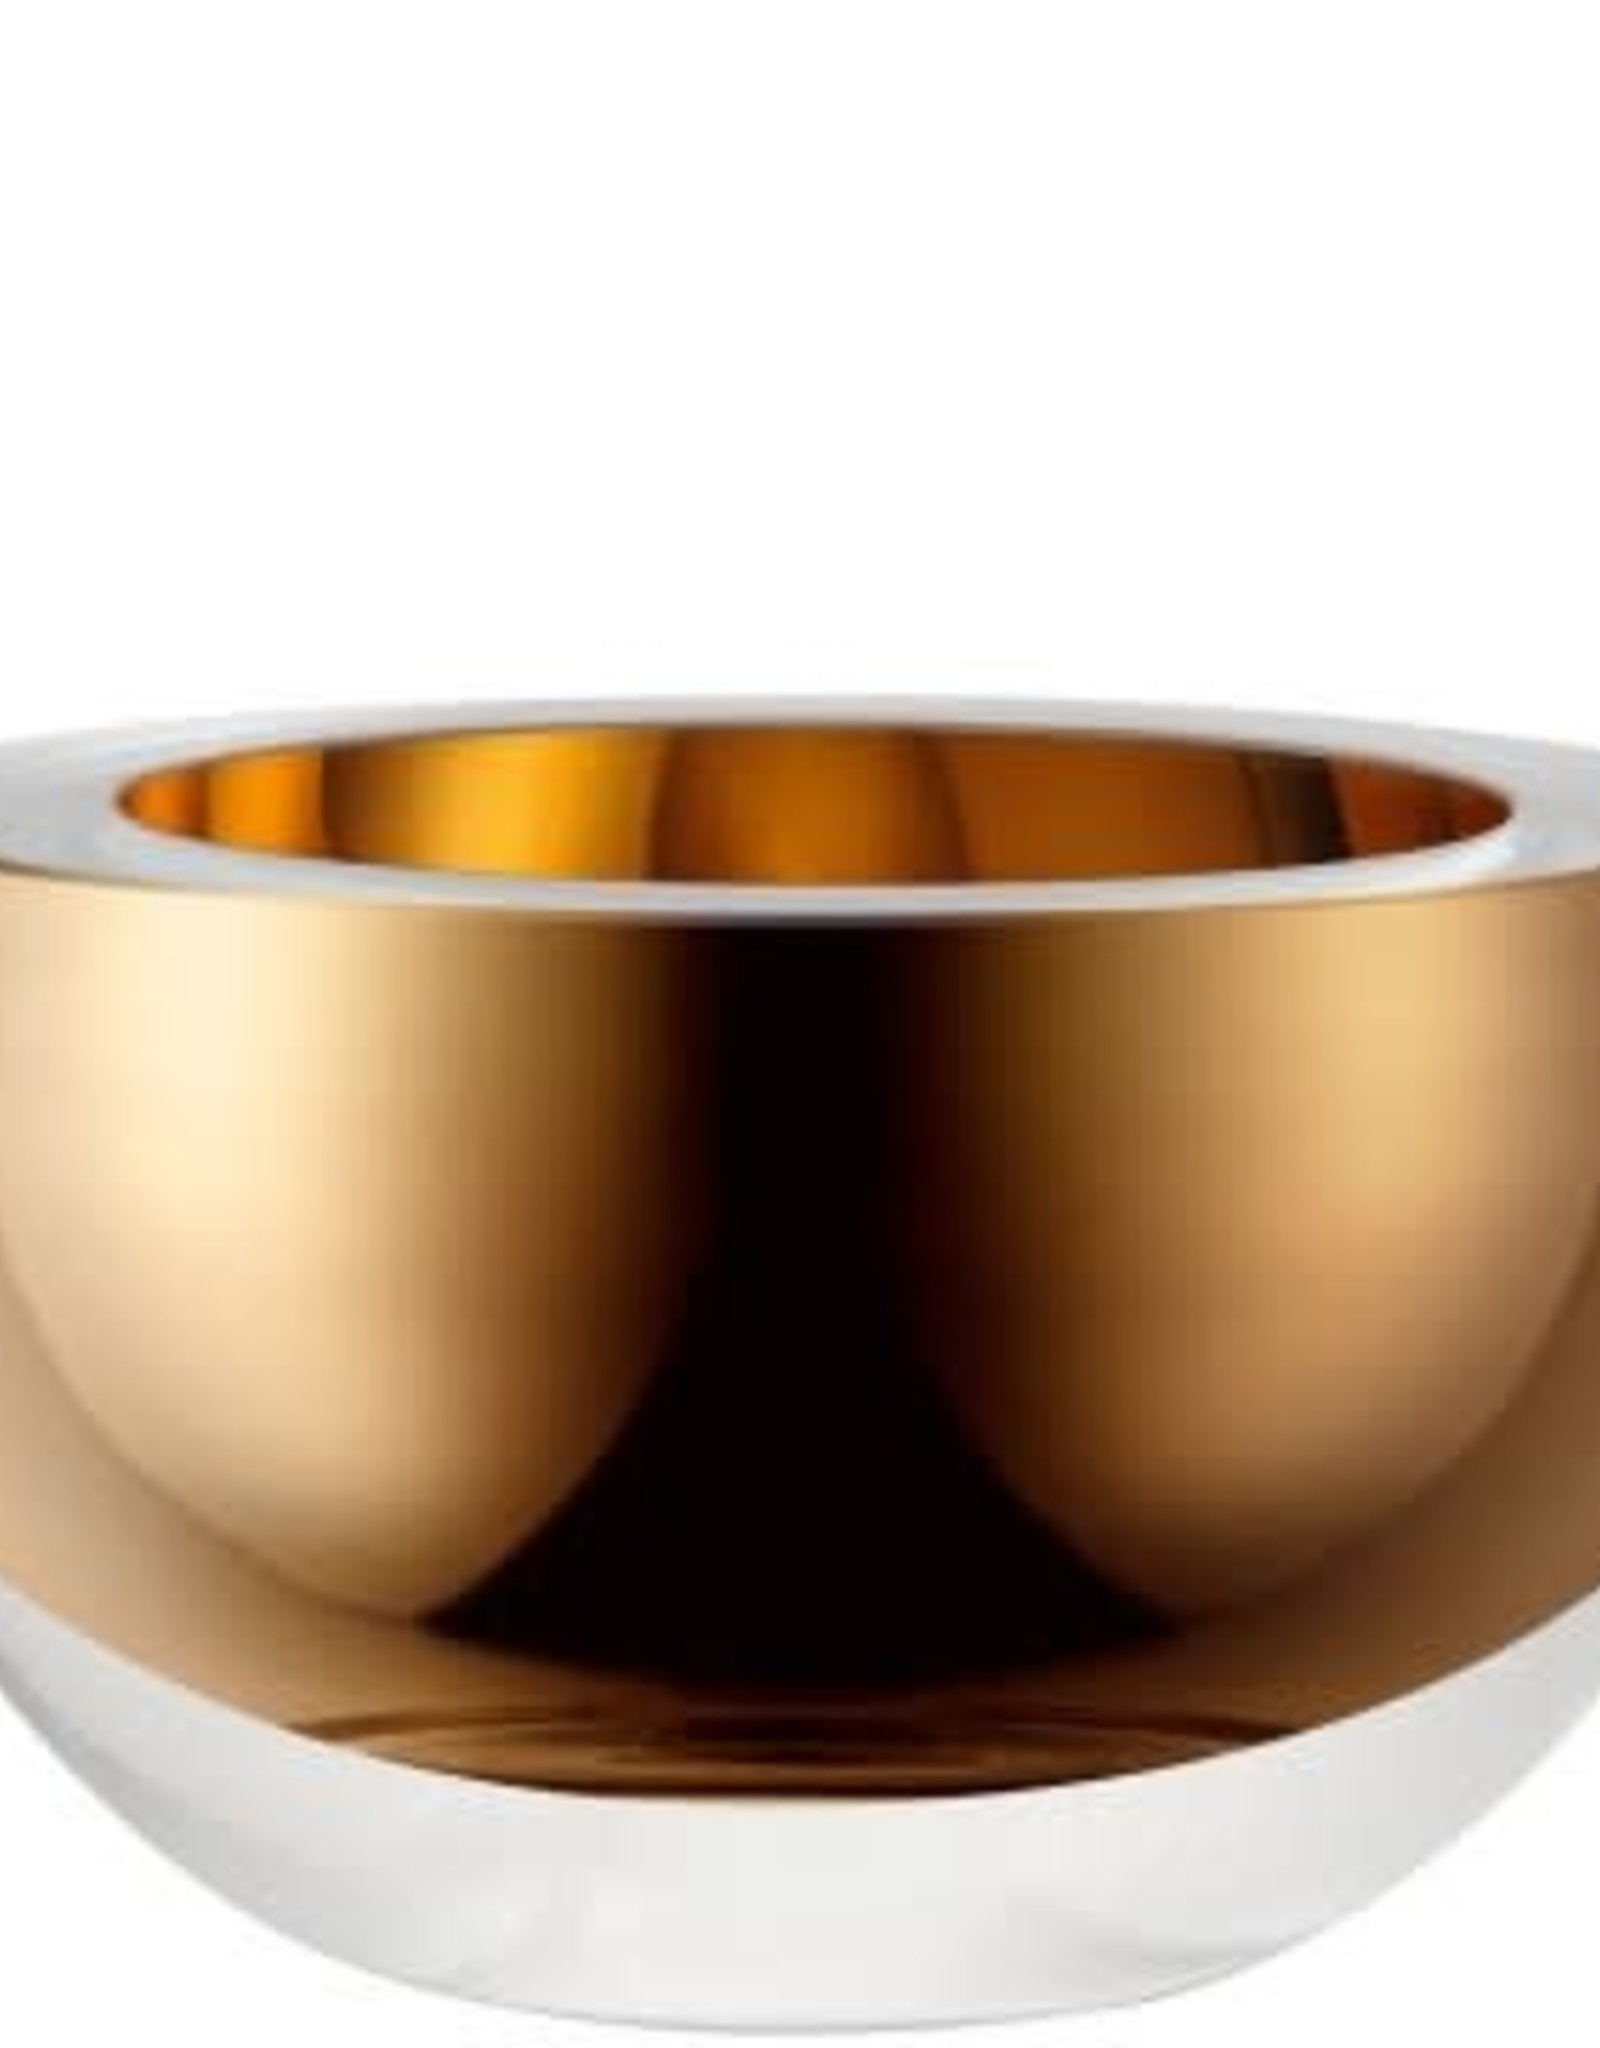 Host Bowl 6in GOLD